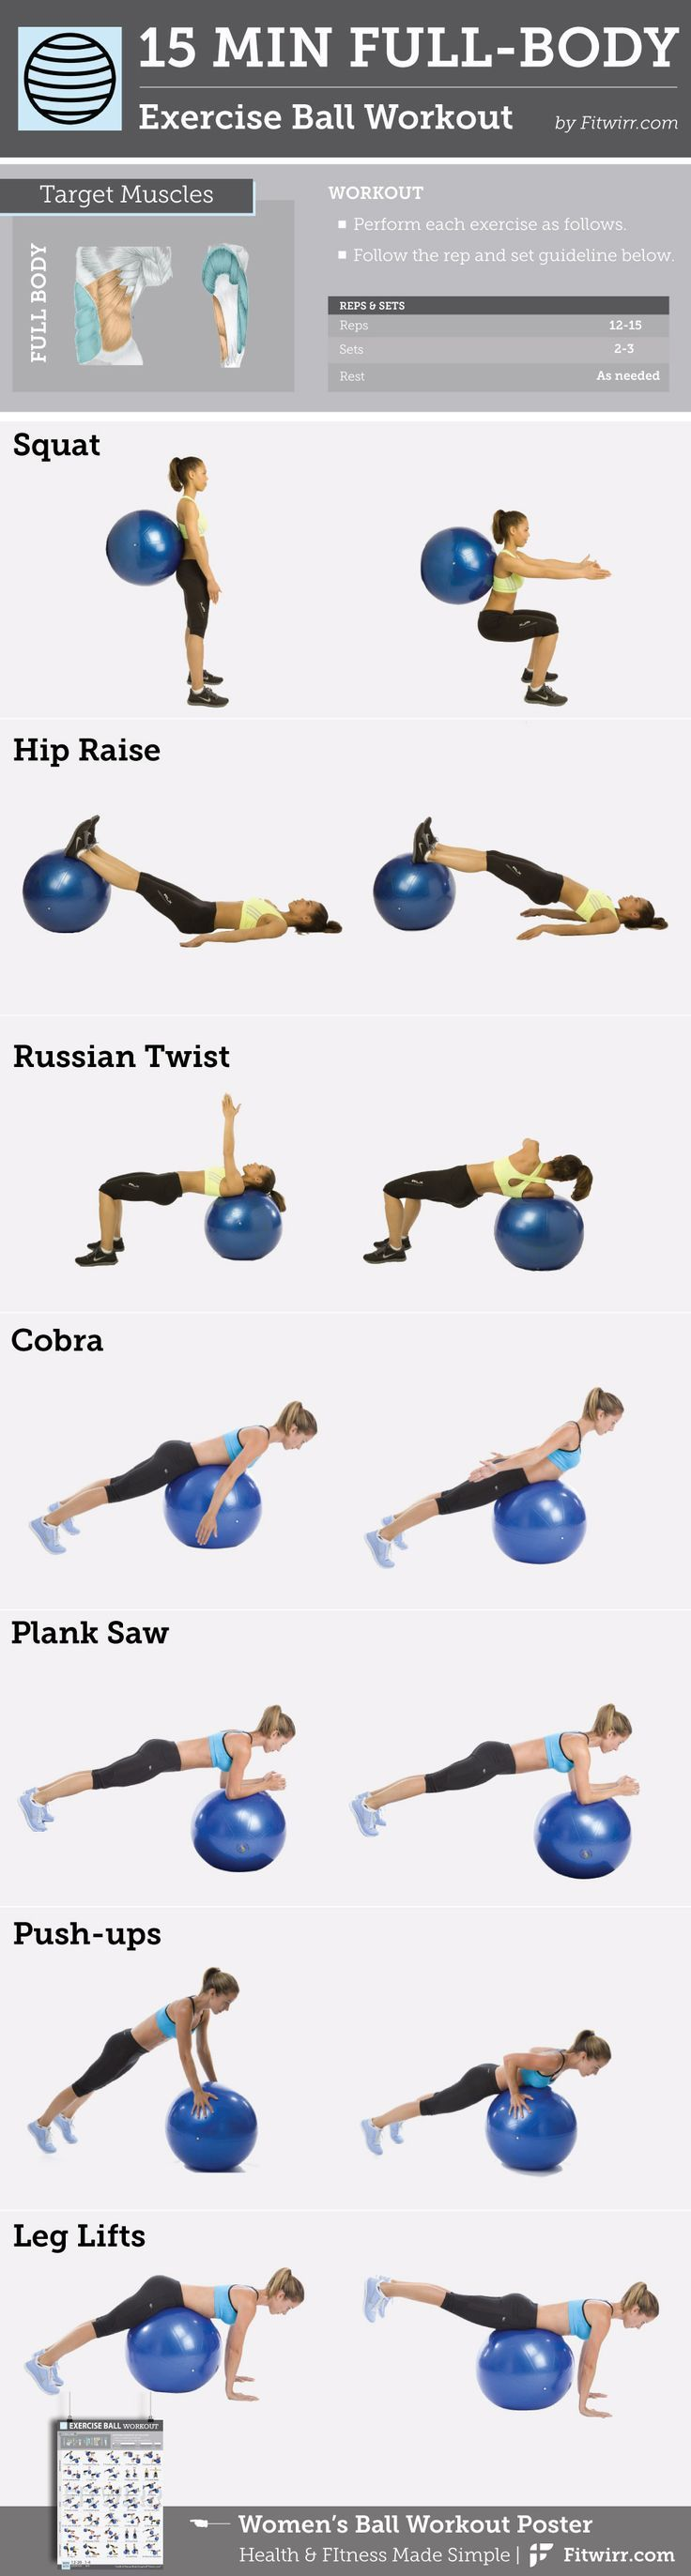 15-Min Bikini Body Ball Workout to Slim Down - Fitwirr